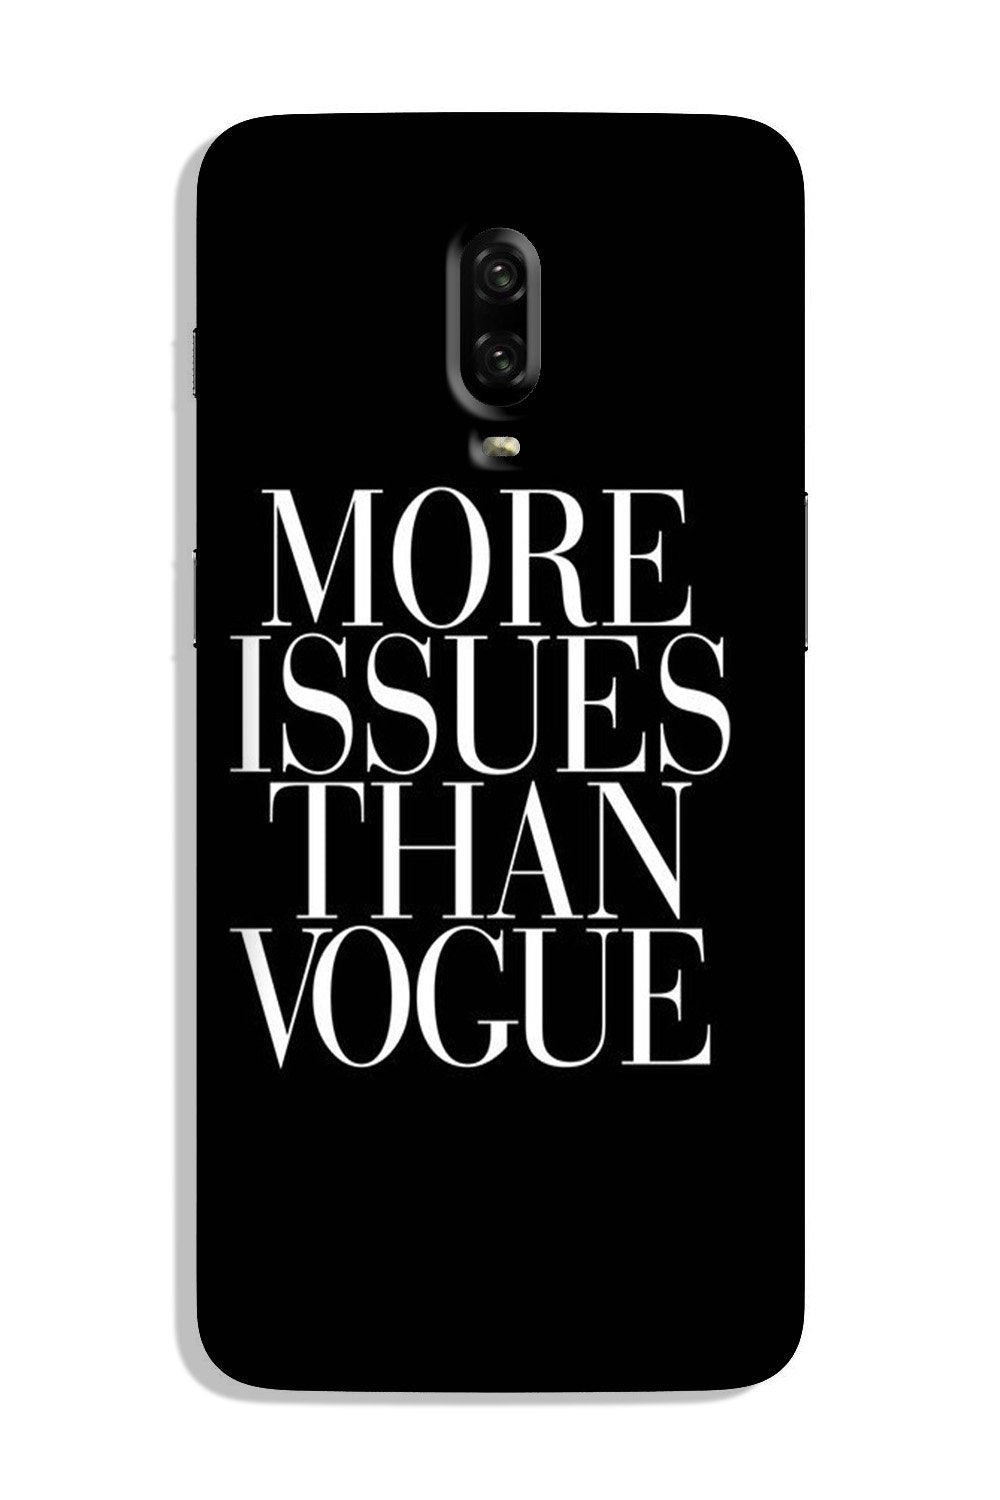 More Issues than Vague Case for OnePlus 6T